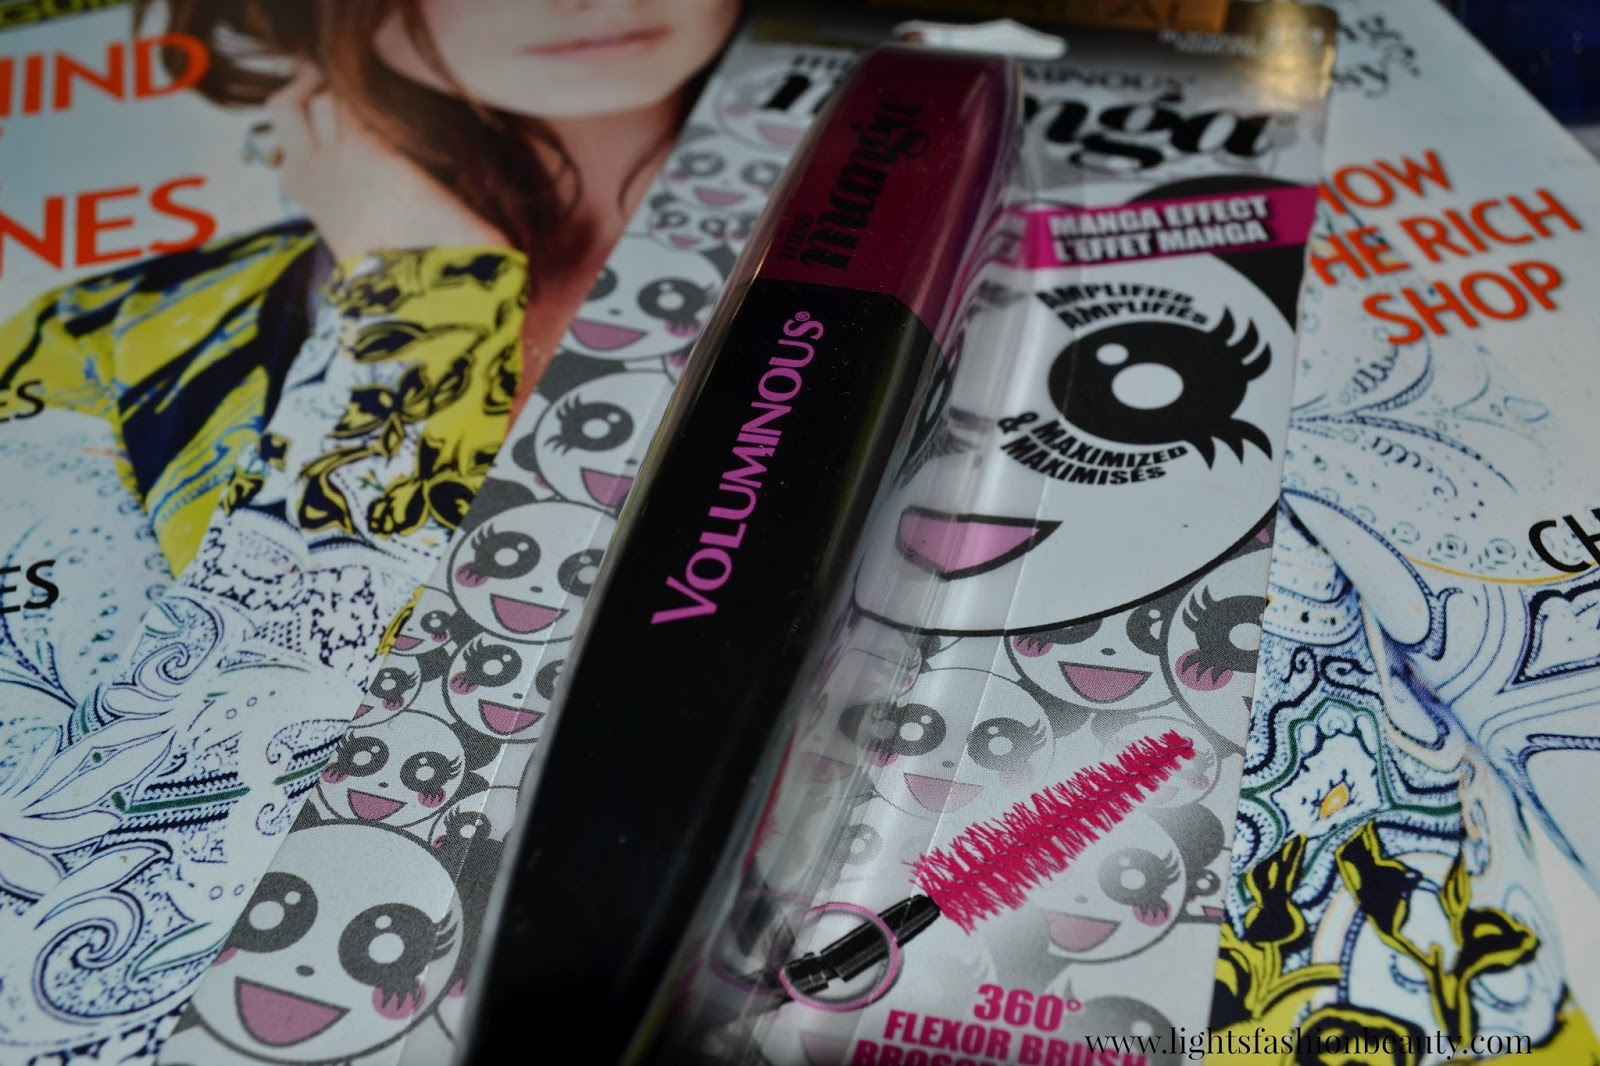 L'Oréal Miss Manga Mascara , miss manga mascara, loreal miss manga, new drugstore mascara, loreal mascara review, miss manga mascara review, beauty, montreal beauty blog, canadian beauty blog, blog beauté montréal, lightsfashionbeauty, canadian blog lightsfashionbeauty, brown beauty,